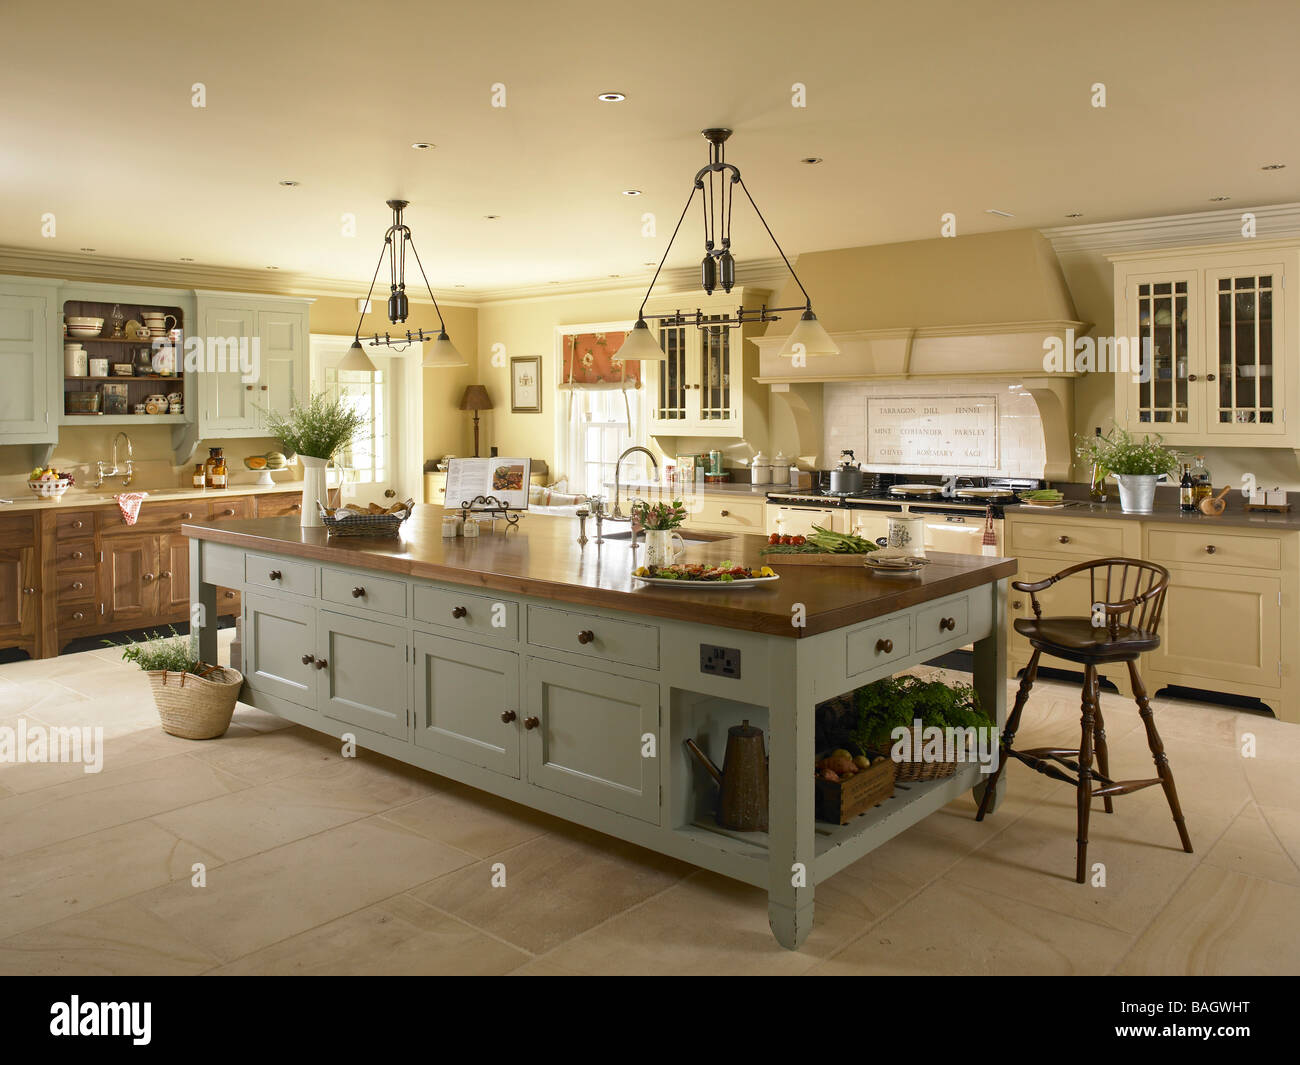 A large kitchen island unit stock photo royalty free for Large kitchen island ideas with seating